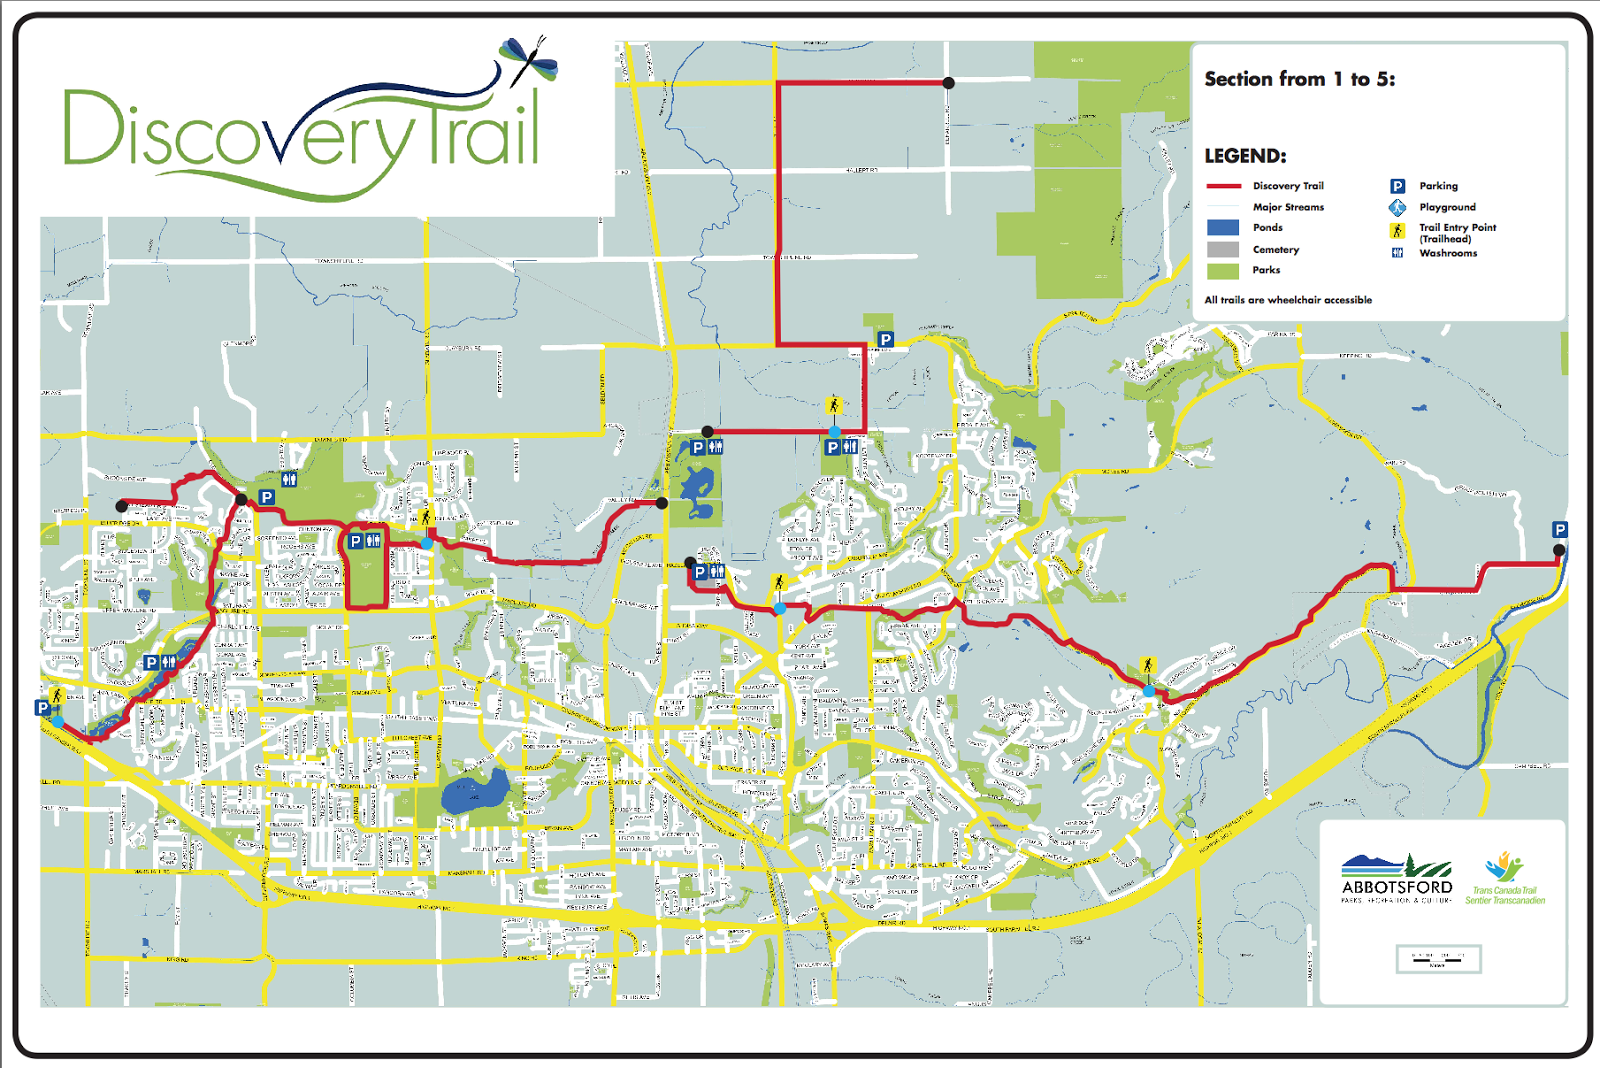 69 Discovery Trail Lets Go Biking